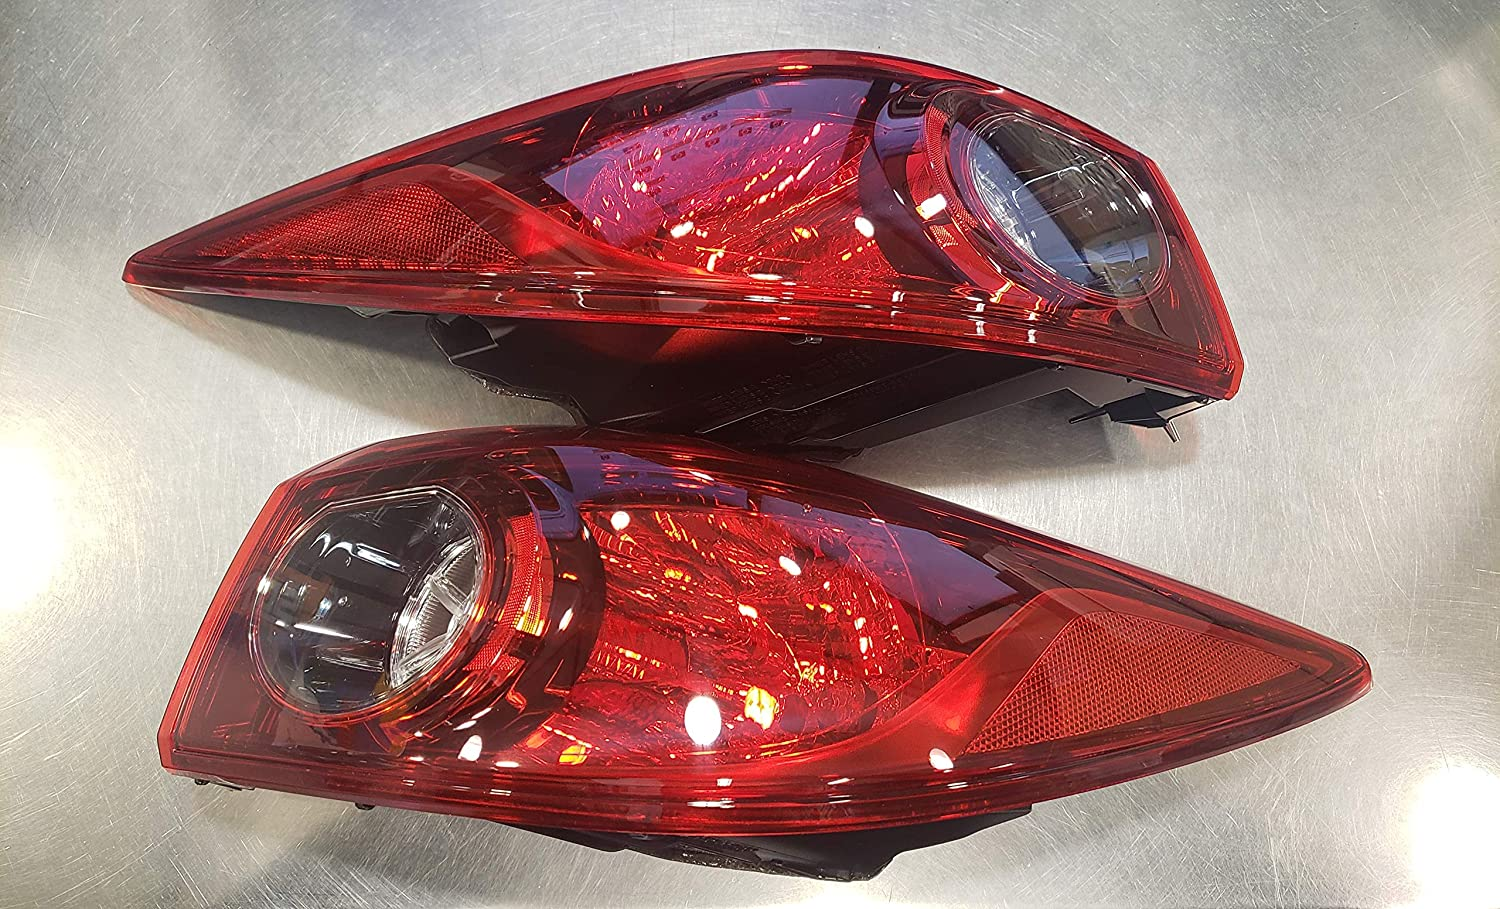 New Genuine OEM Sale SALE% OFF 2015-2018 Mazda 3 Light Tail Rear Assembly Tampa Mall Set